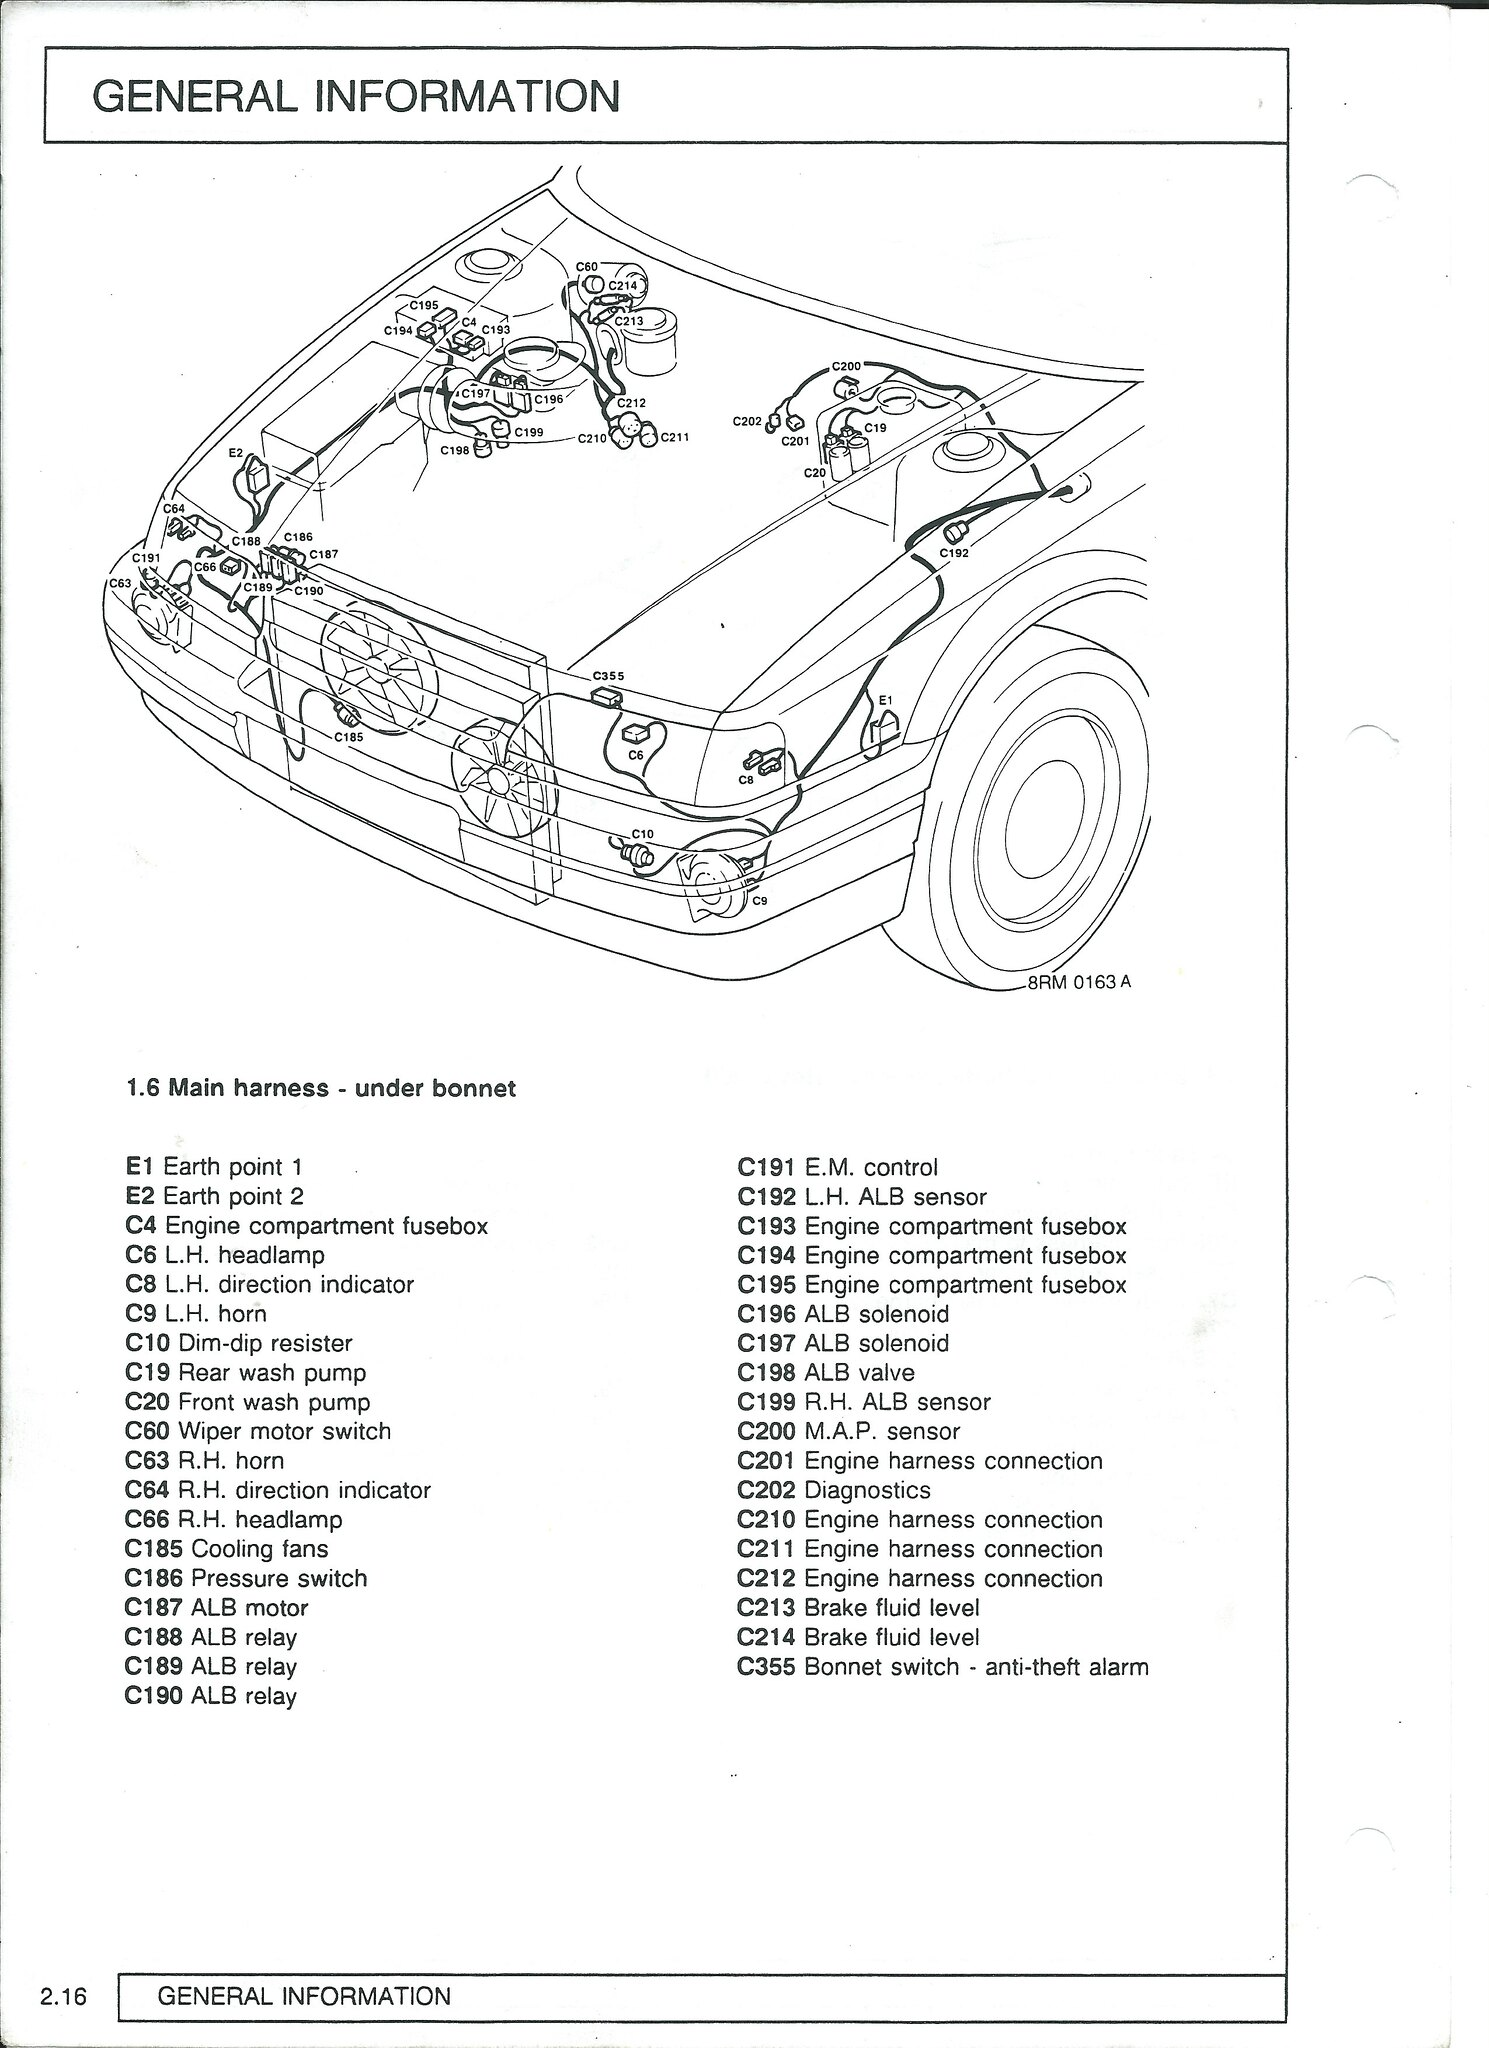 Rover 200 Wiring Diagram